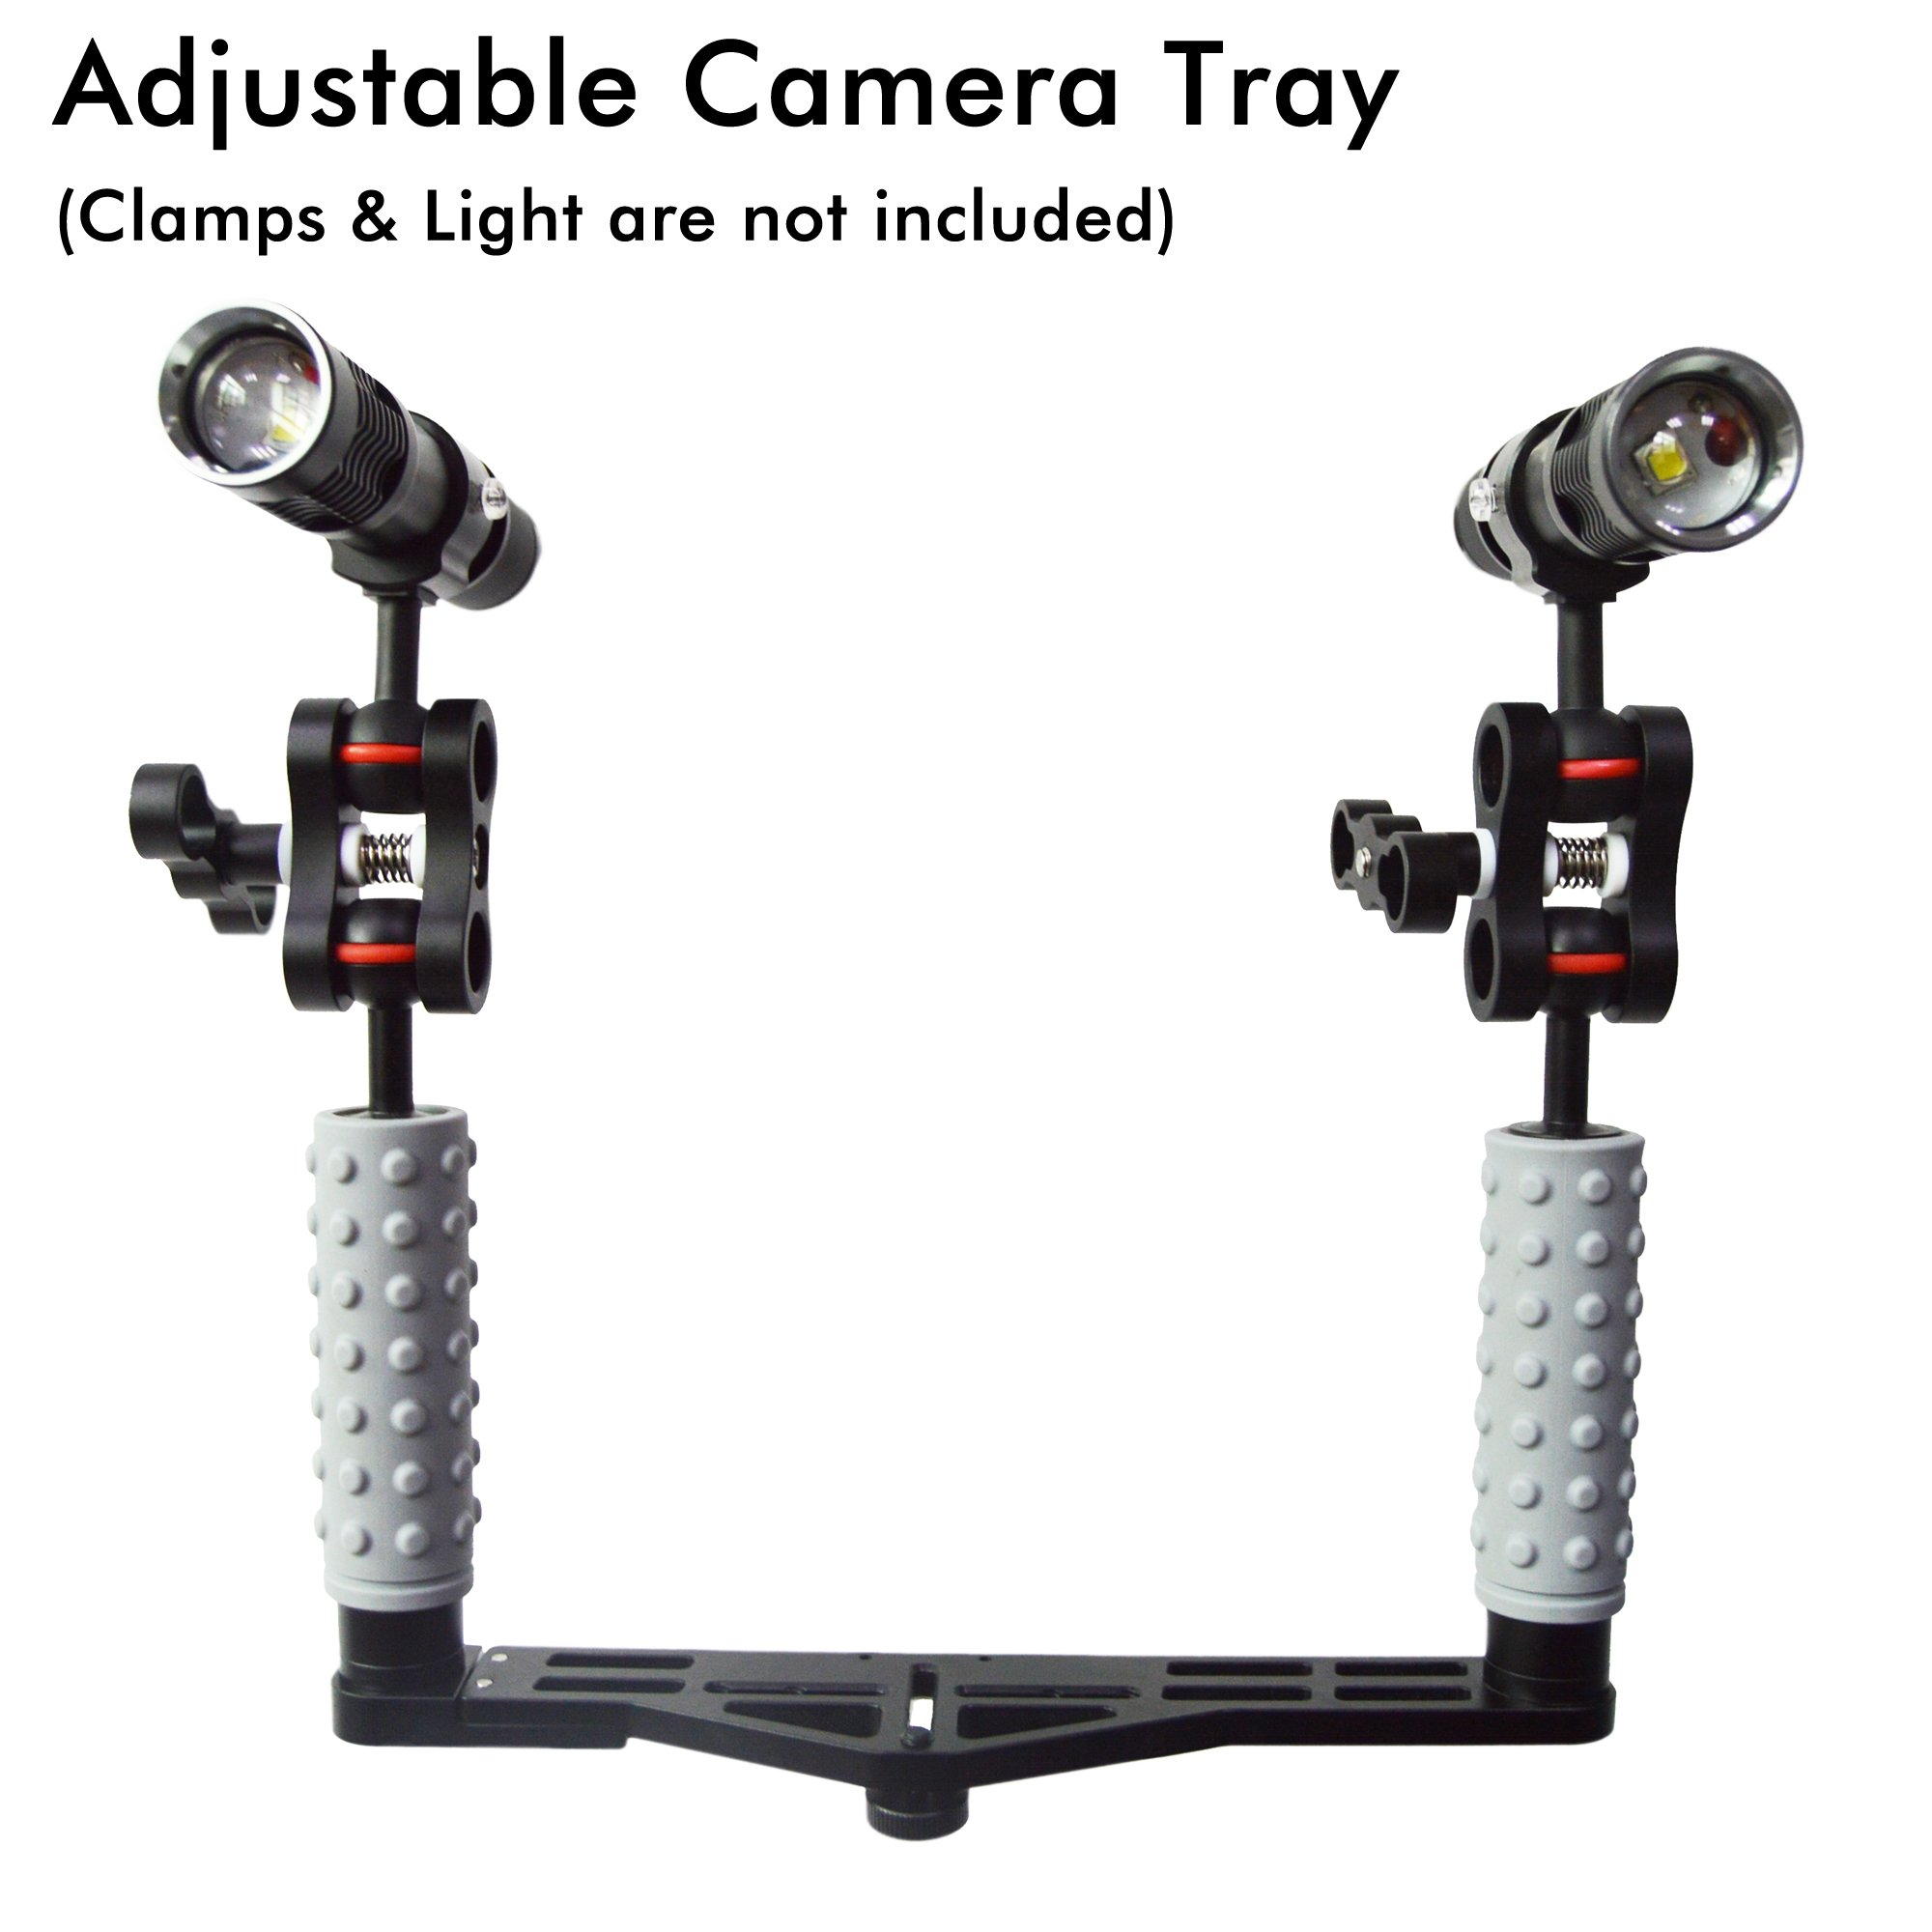 ANO Adjustable Lightweight Aluminum Alloy Camera Tray with Rubber Handle Grip for Dive Video Lights and GoPro SJCAM 6 Inches Dome Port and LED Video Light Camera